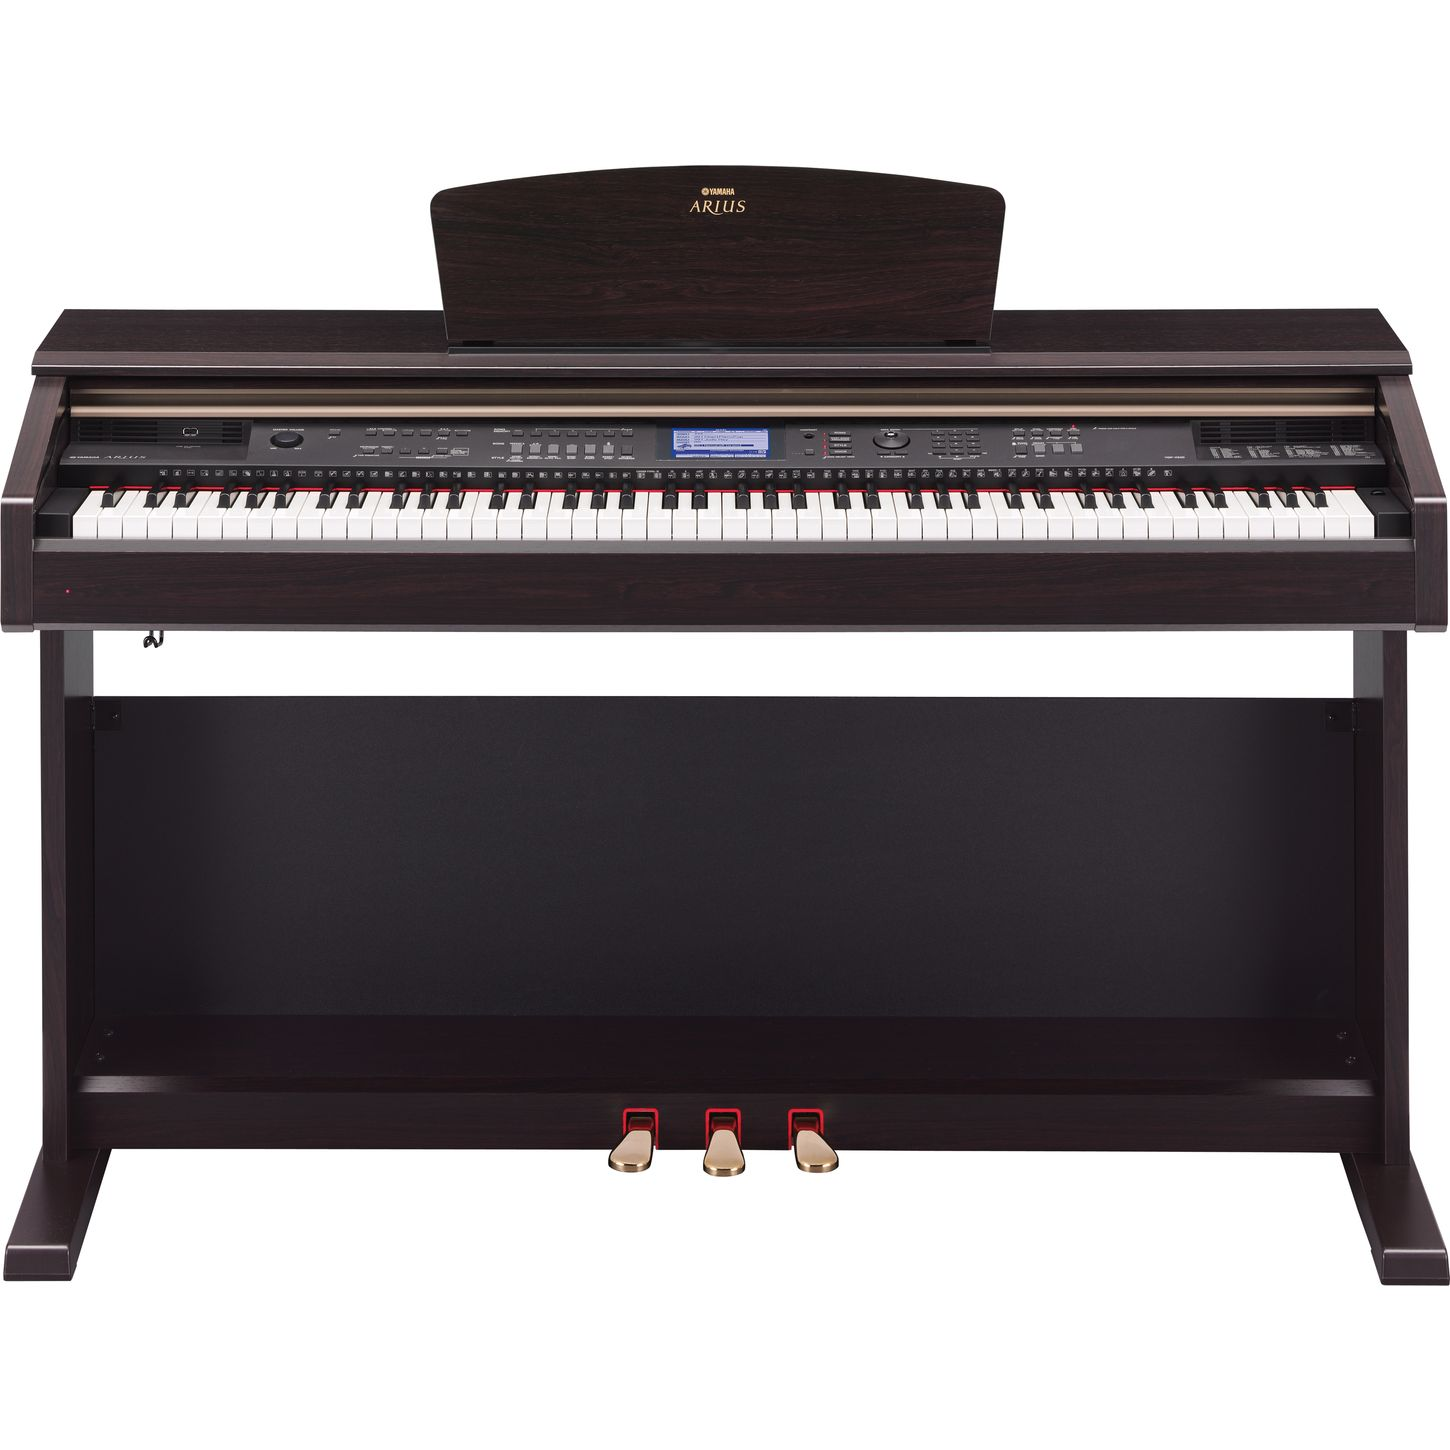 Digital piano rental nj